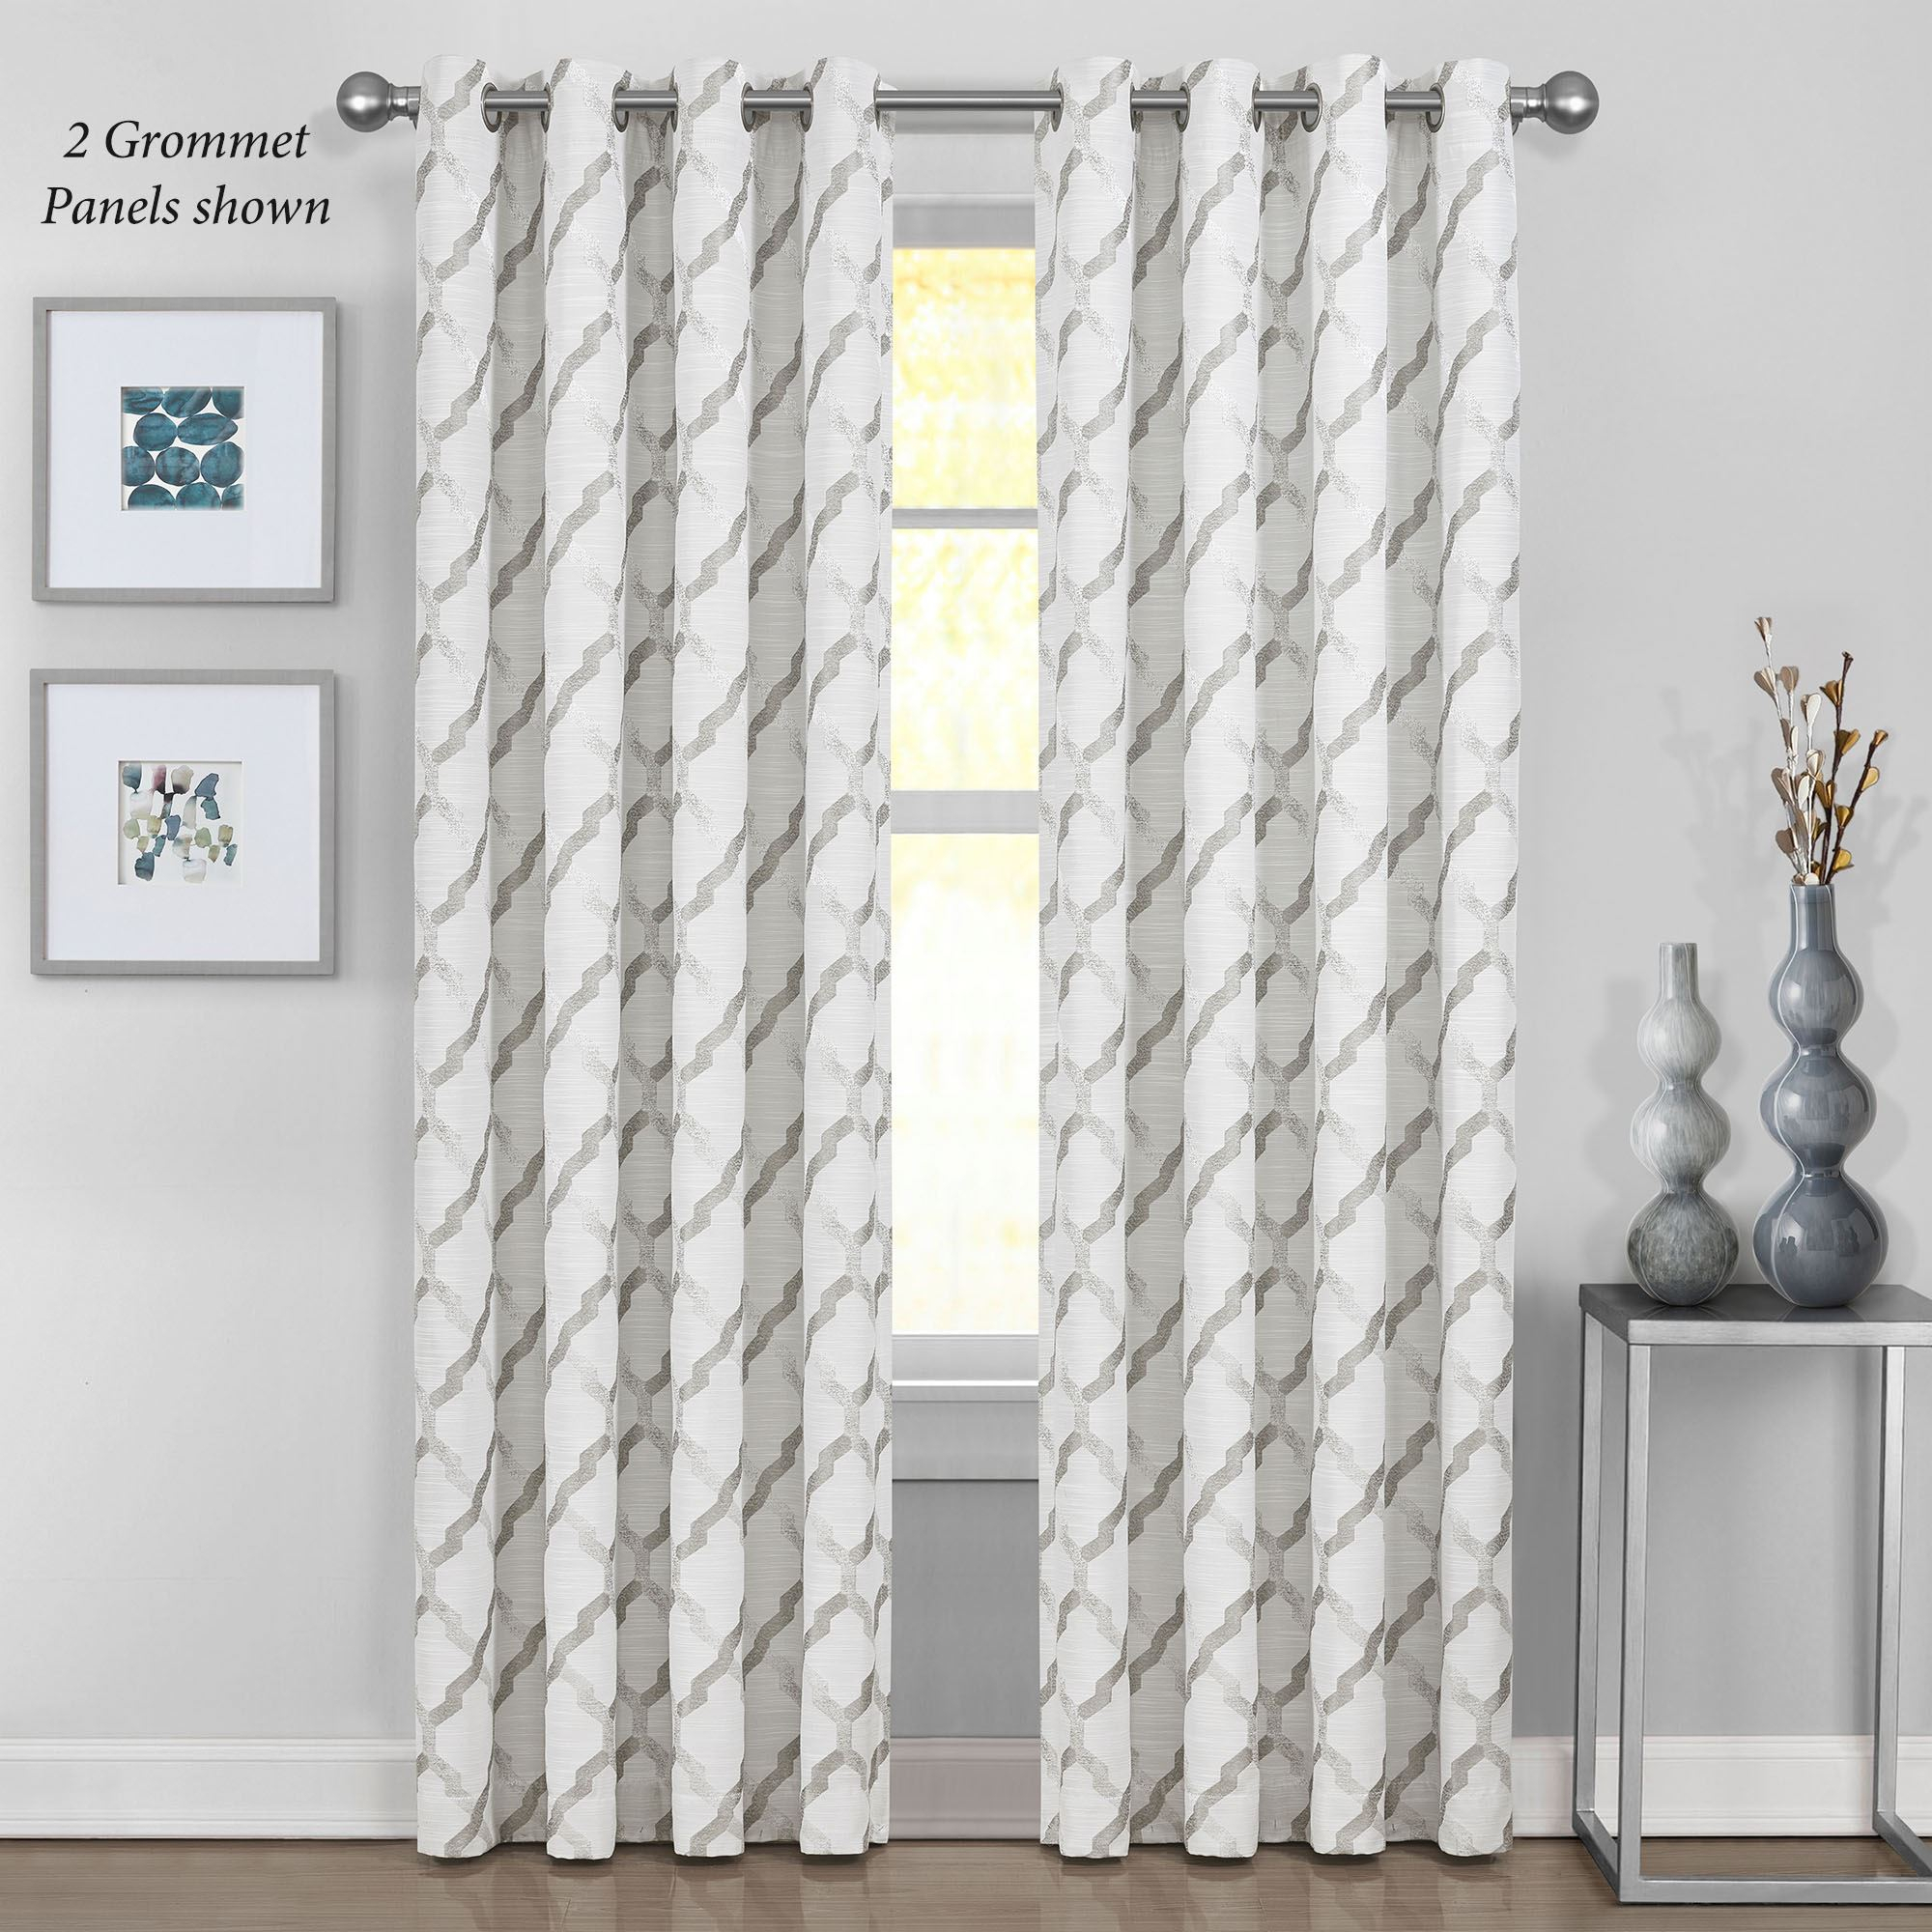 Modena Geometric Lattice Lined Grommet Curtain Panel Pertaining To Lined Grommet Curtain Panels (View 4 of 20)